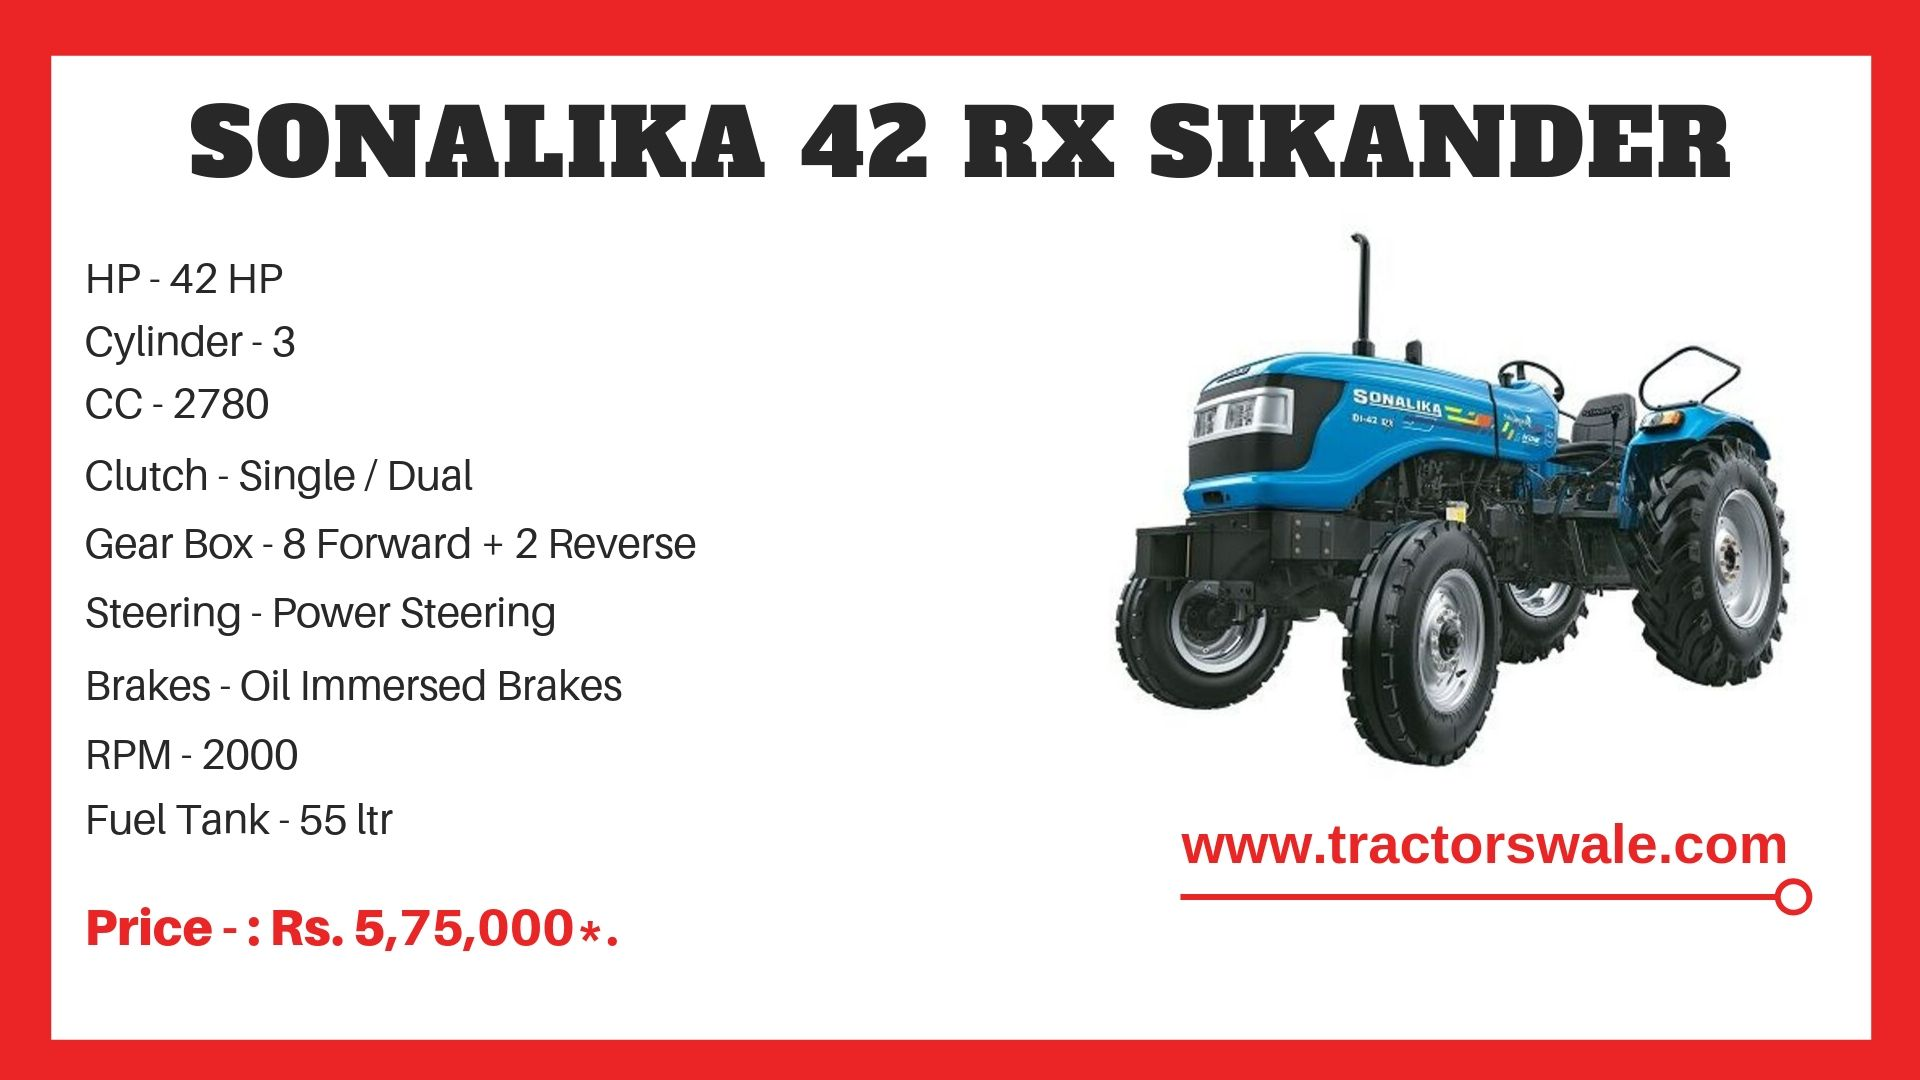 Sonalika 42 RX Sikander tractor specs